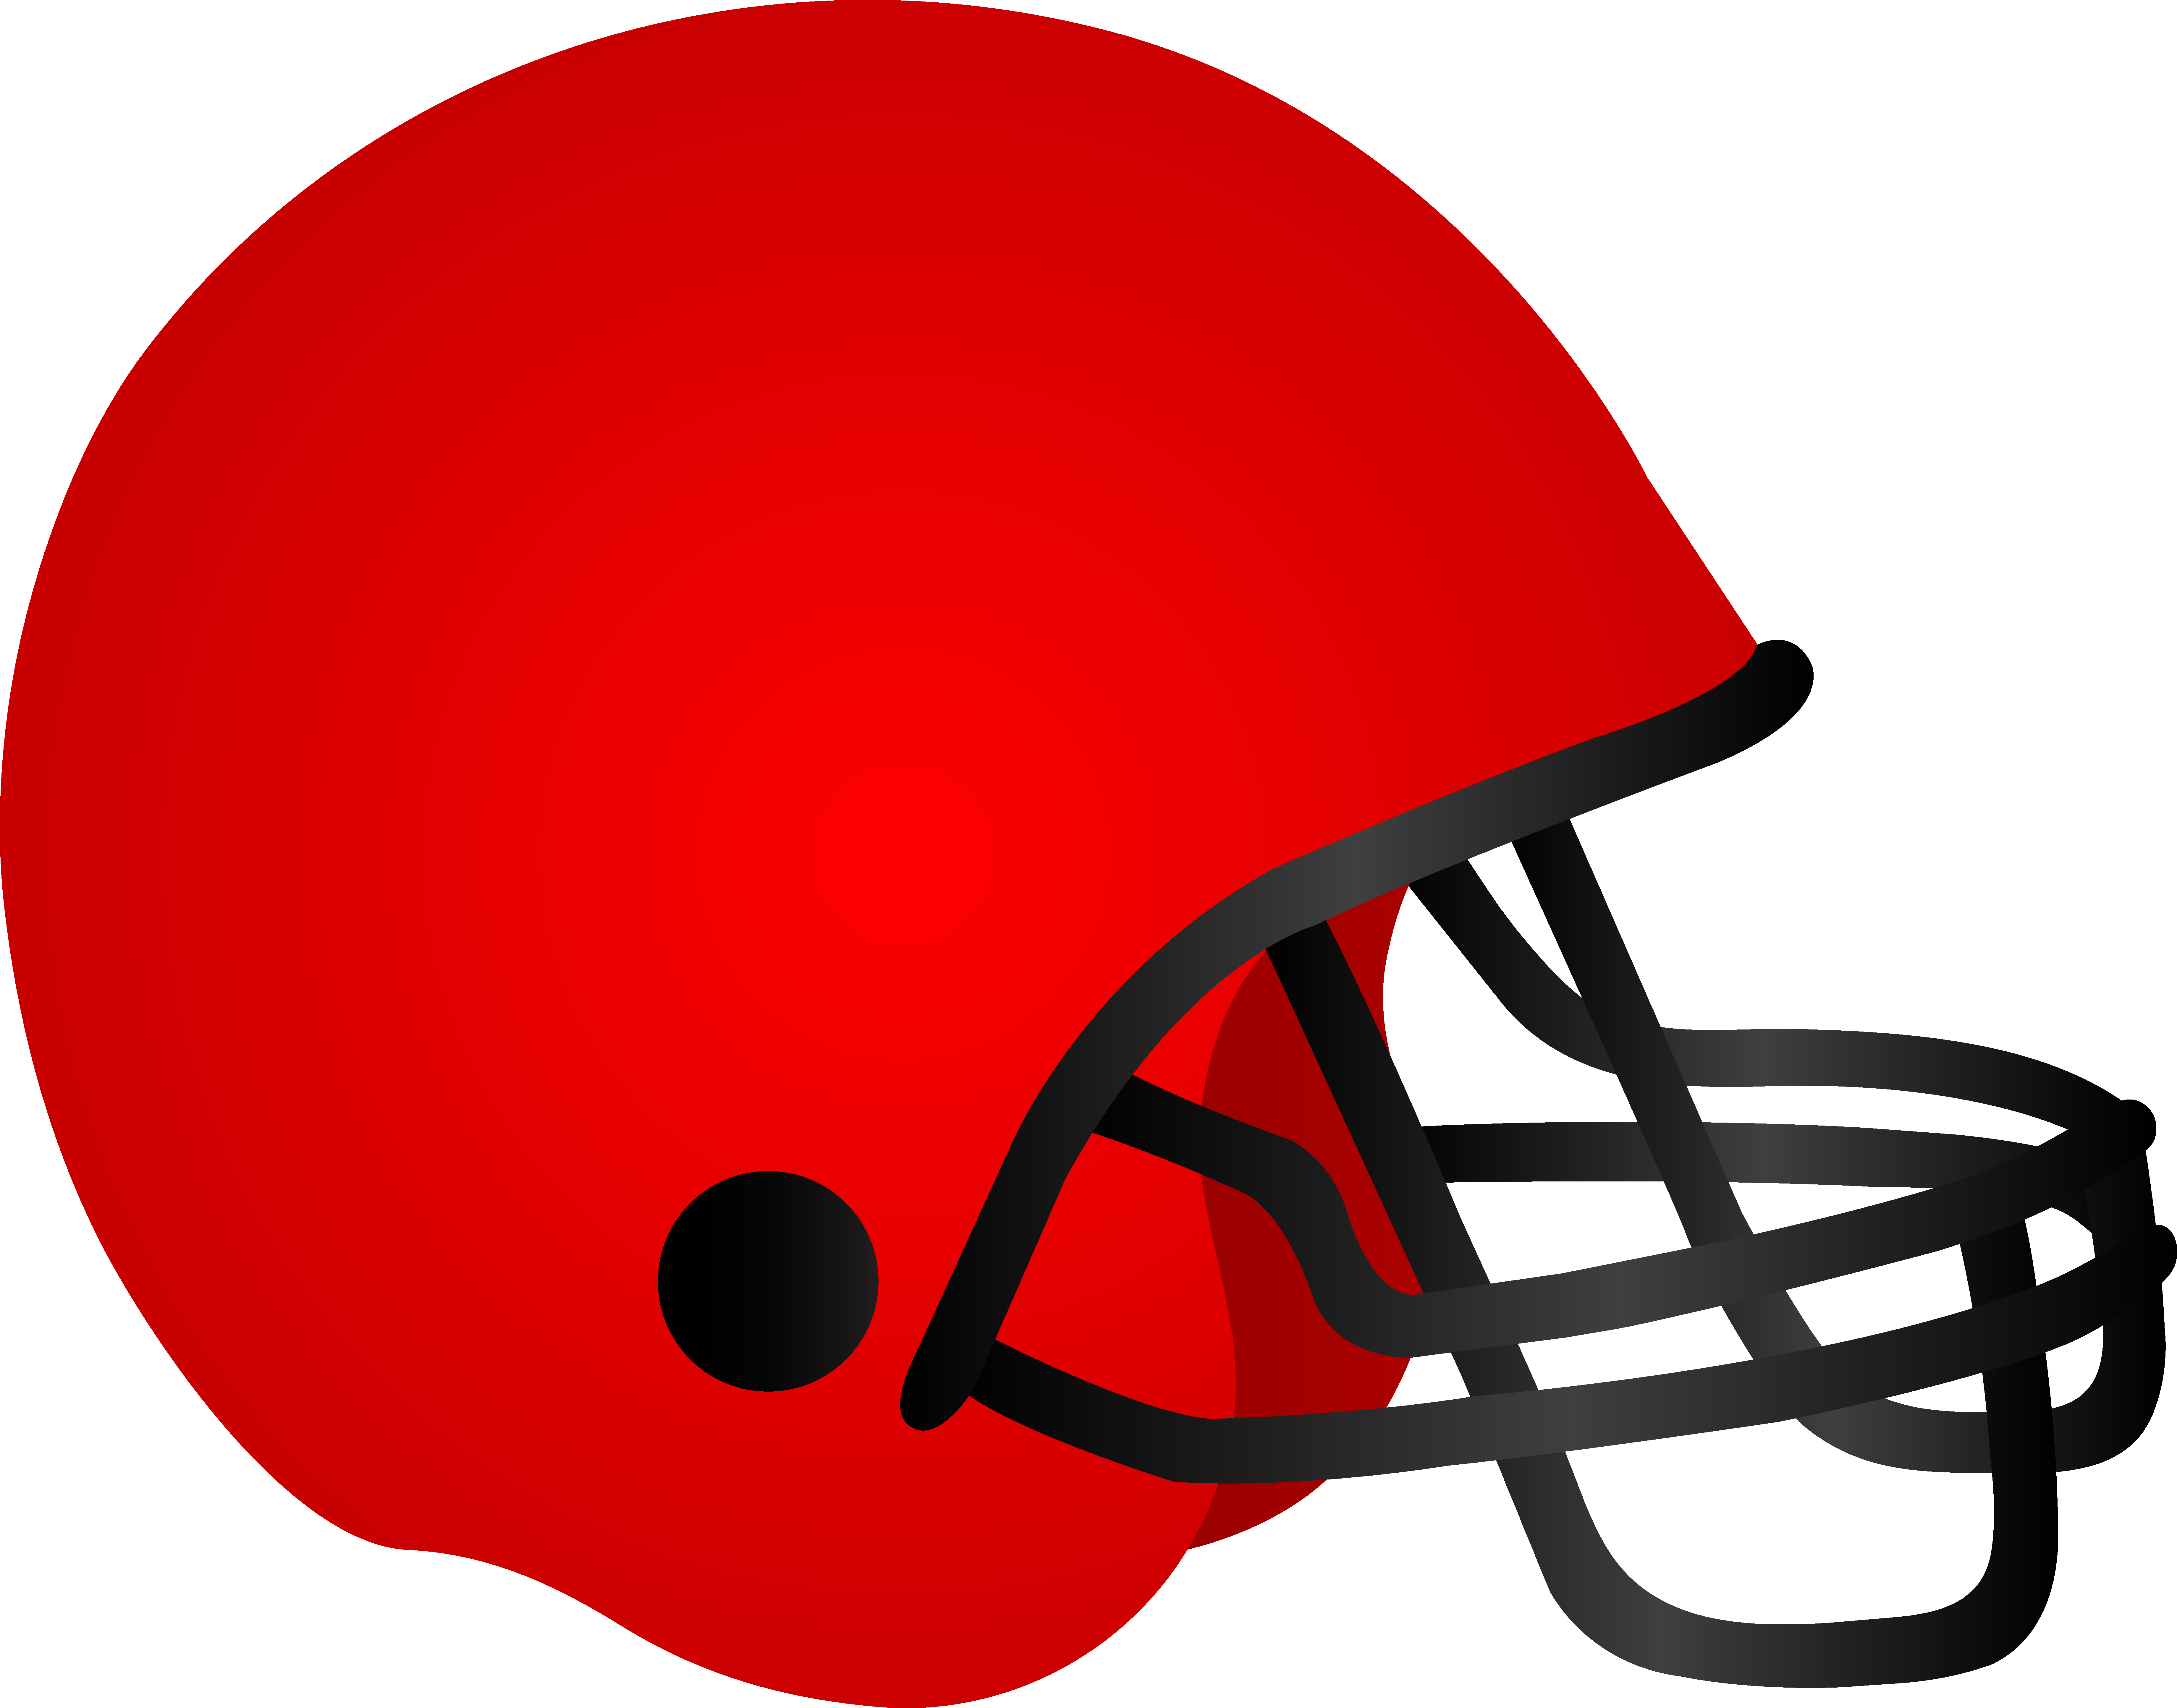 American Football Helm Clipart PNG Image